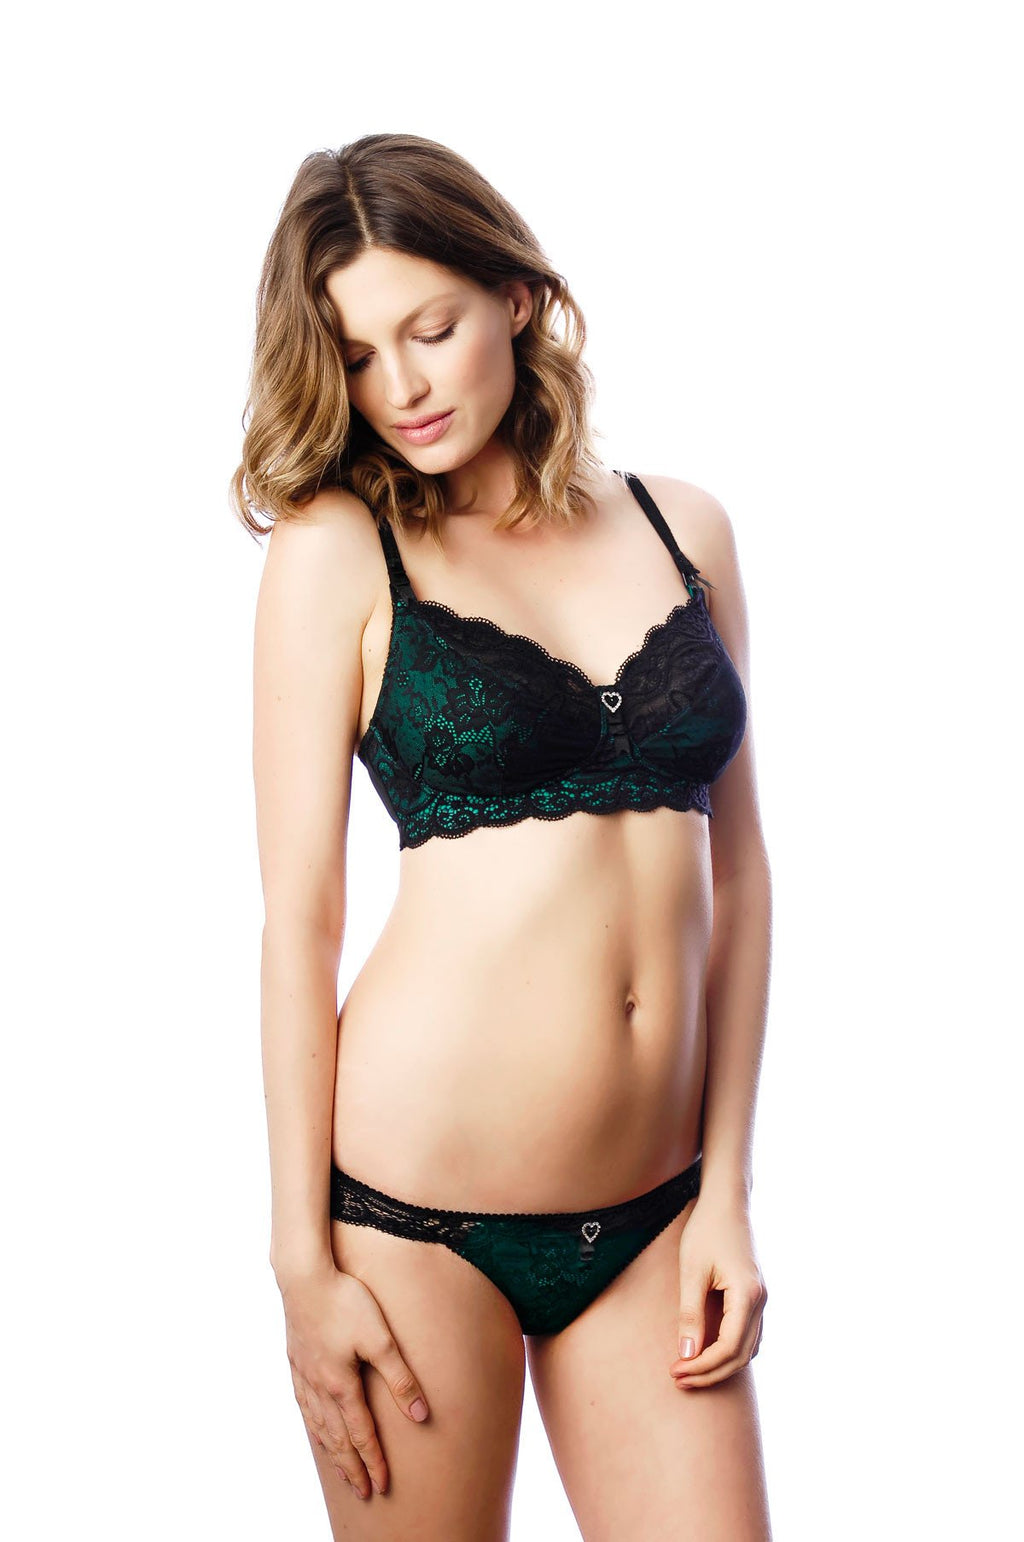 EMERALD CITY NURSING BRA